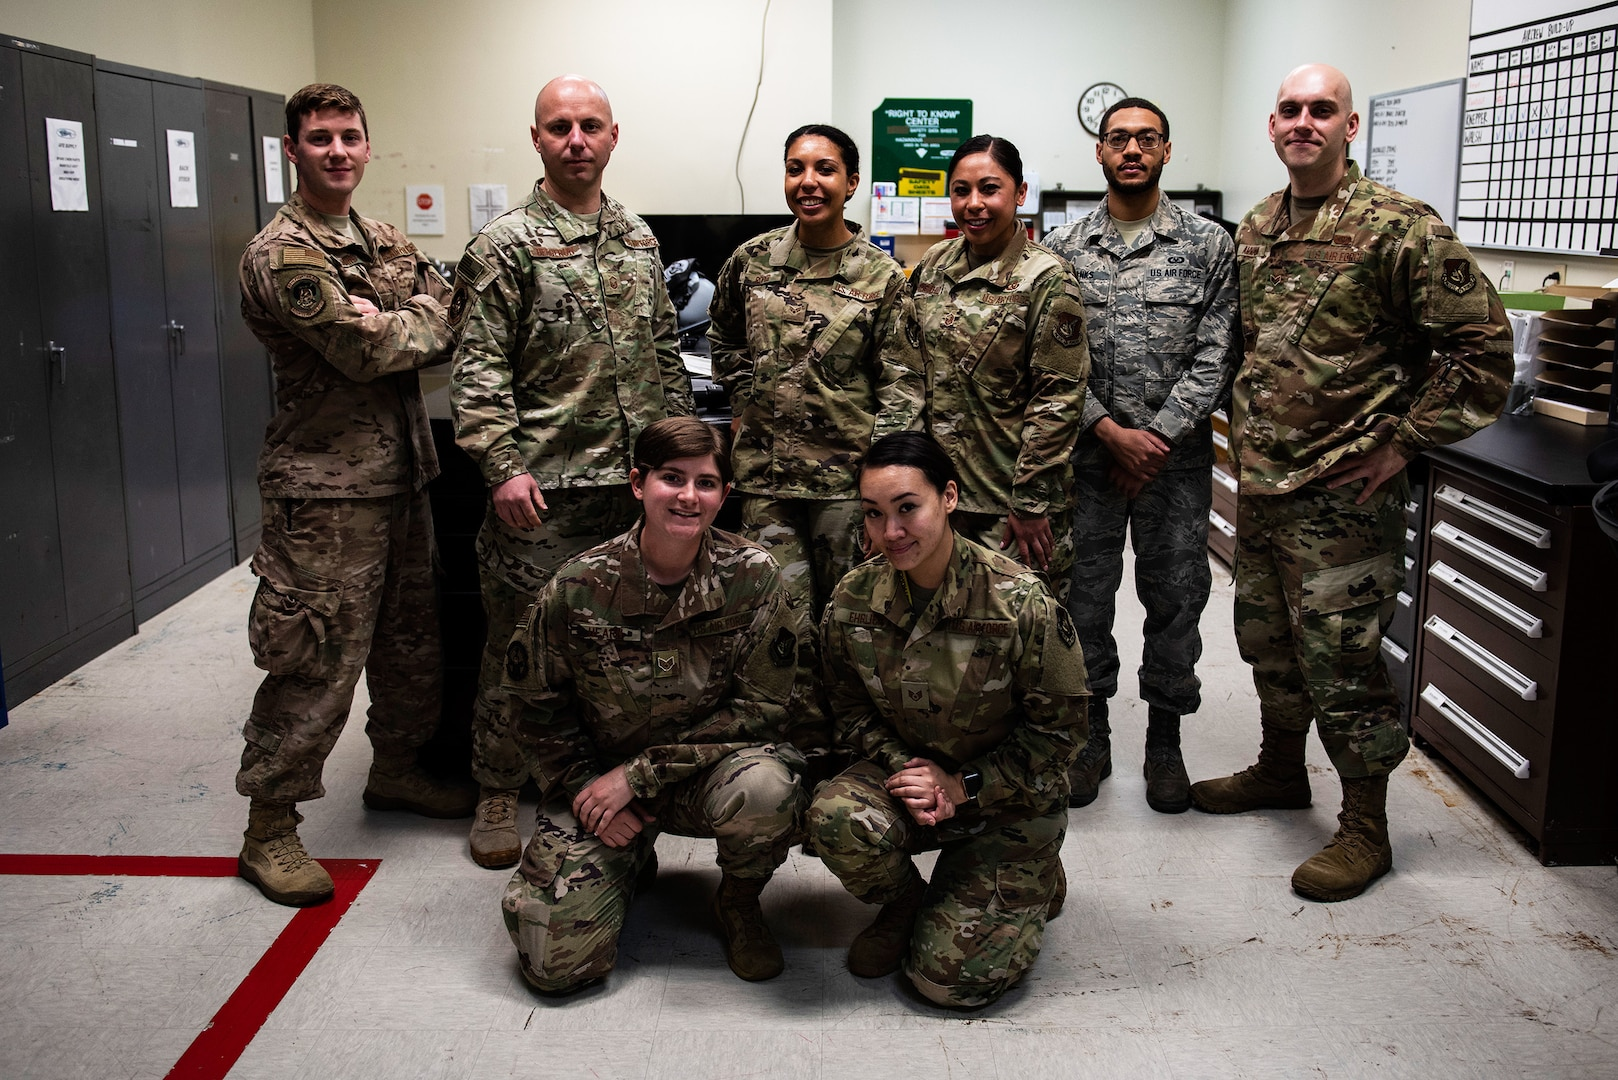 35th, 80th Aircrew Flight Equipment Combine Experience, Grow in Excellence